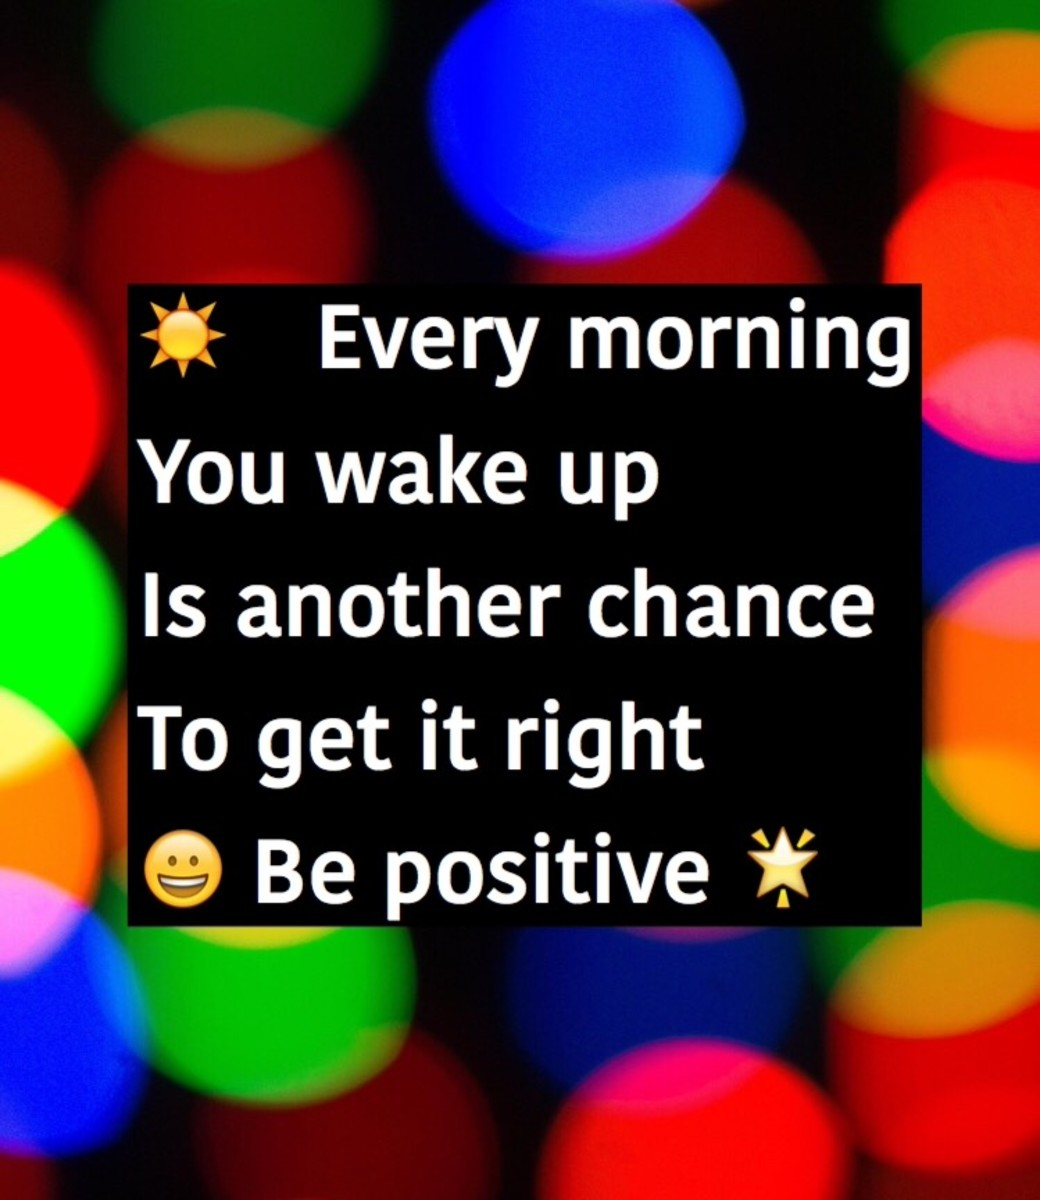 Positivity Quotes, Meme's And Positive Status Updates